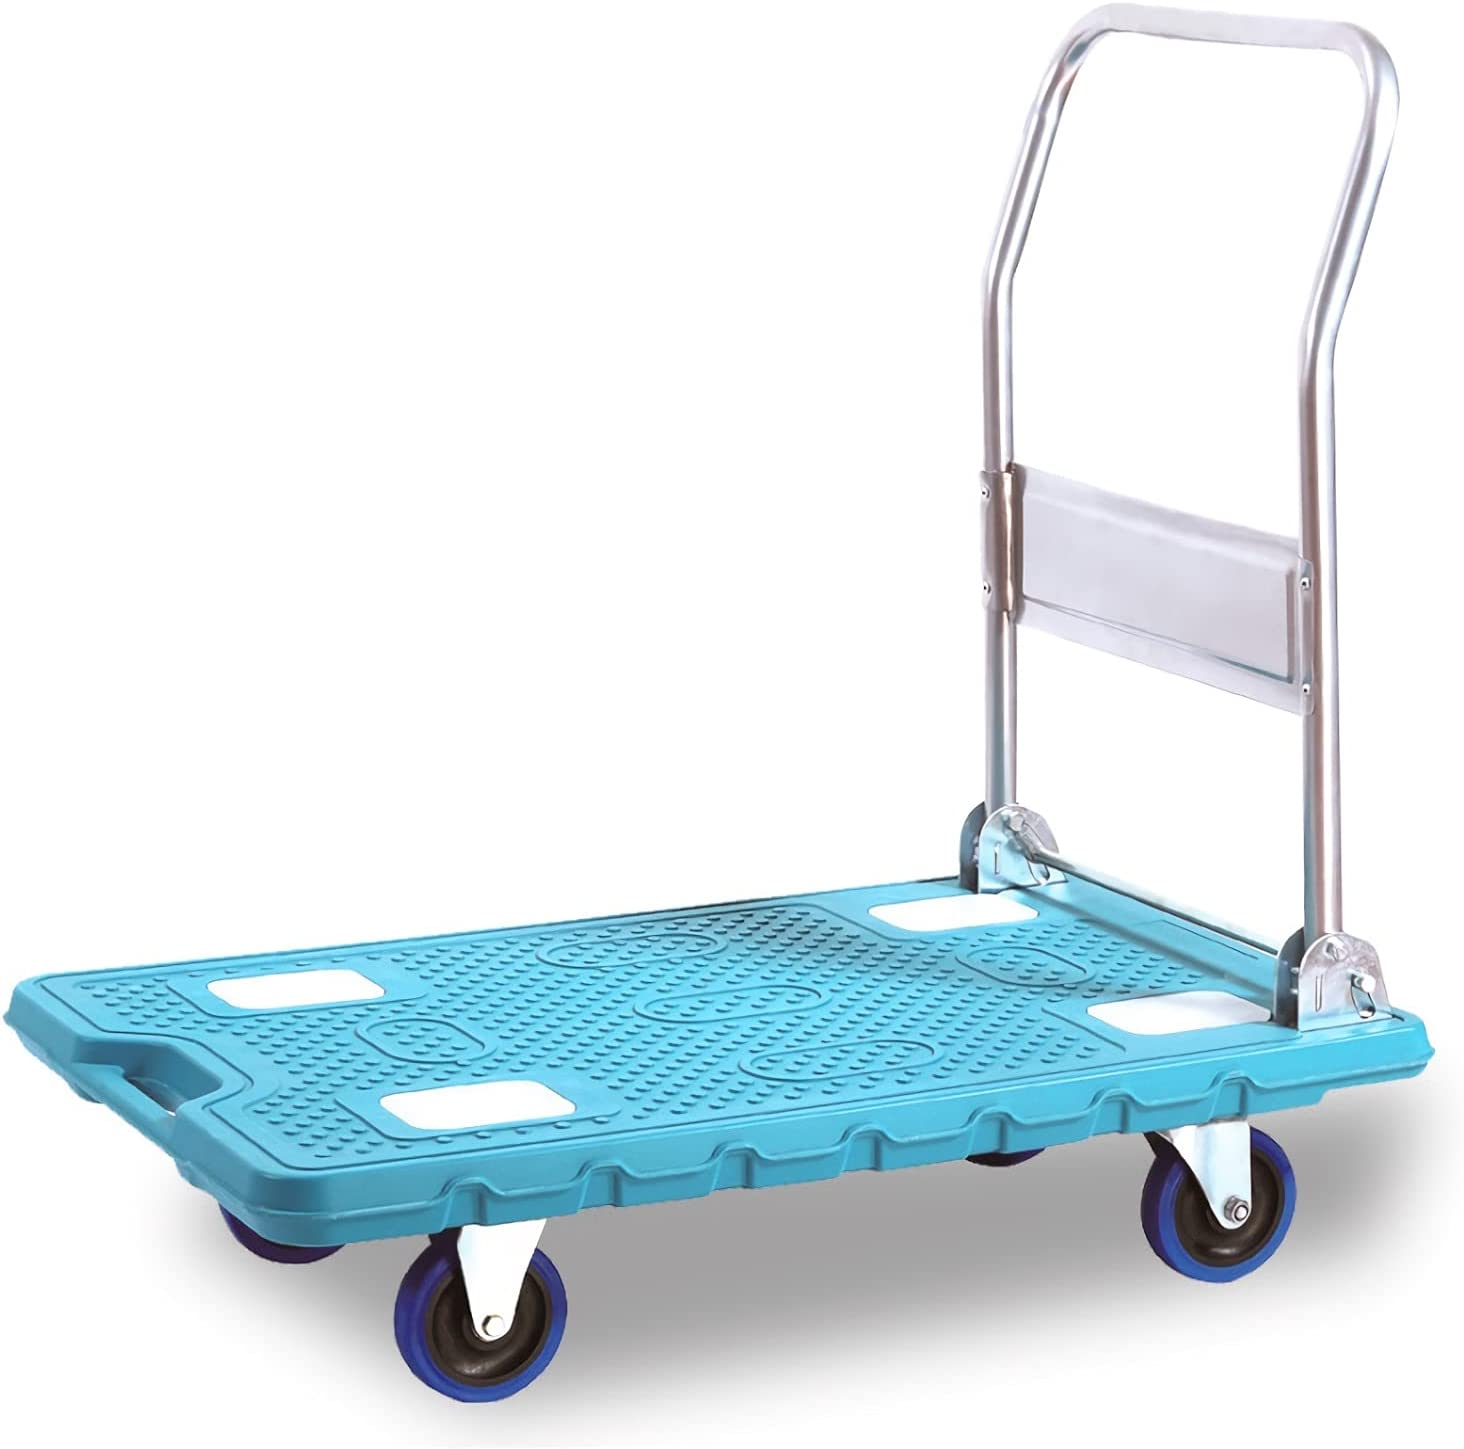 DALIZHAI777 Platform Cart Plastic Trolley Flatbed Ranking TOP1 Metal All stores are sold Foldable